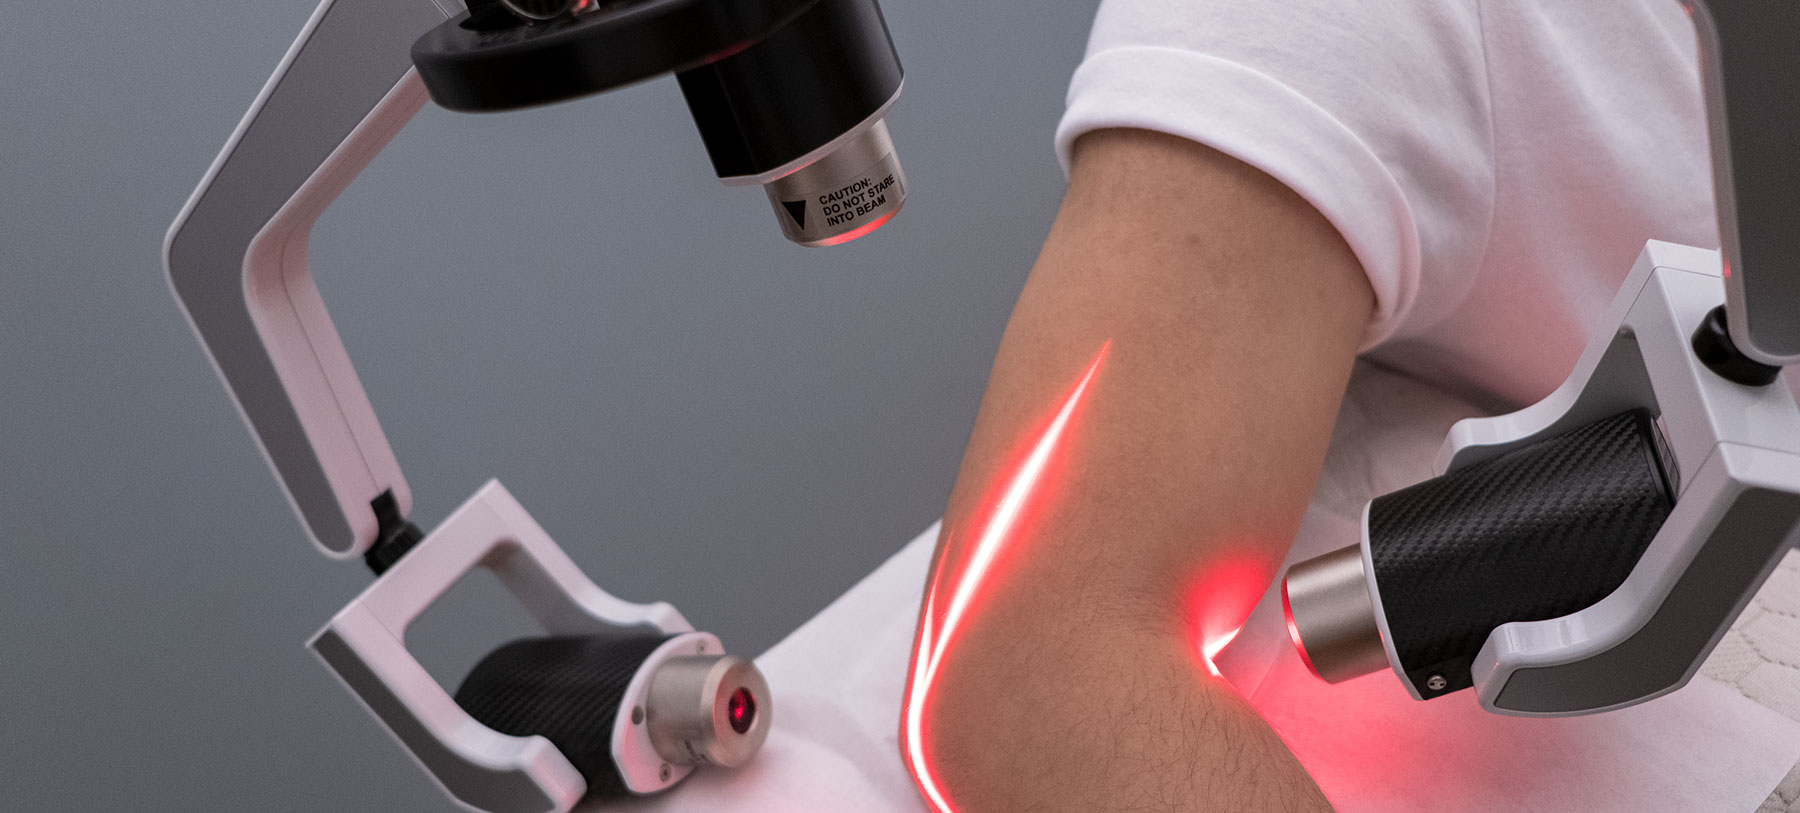 HIV AIDS Cure by LASER Therapy and Gene Editing